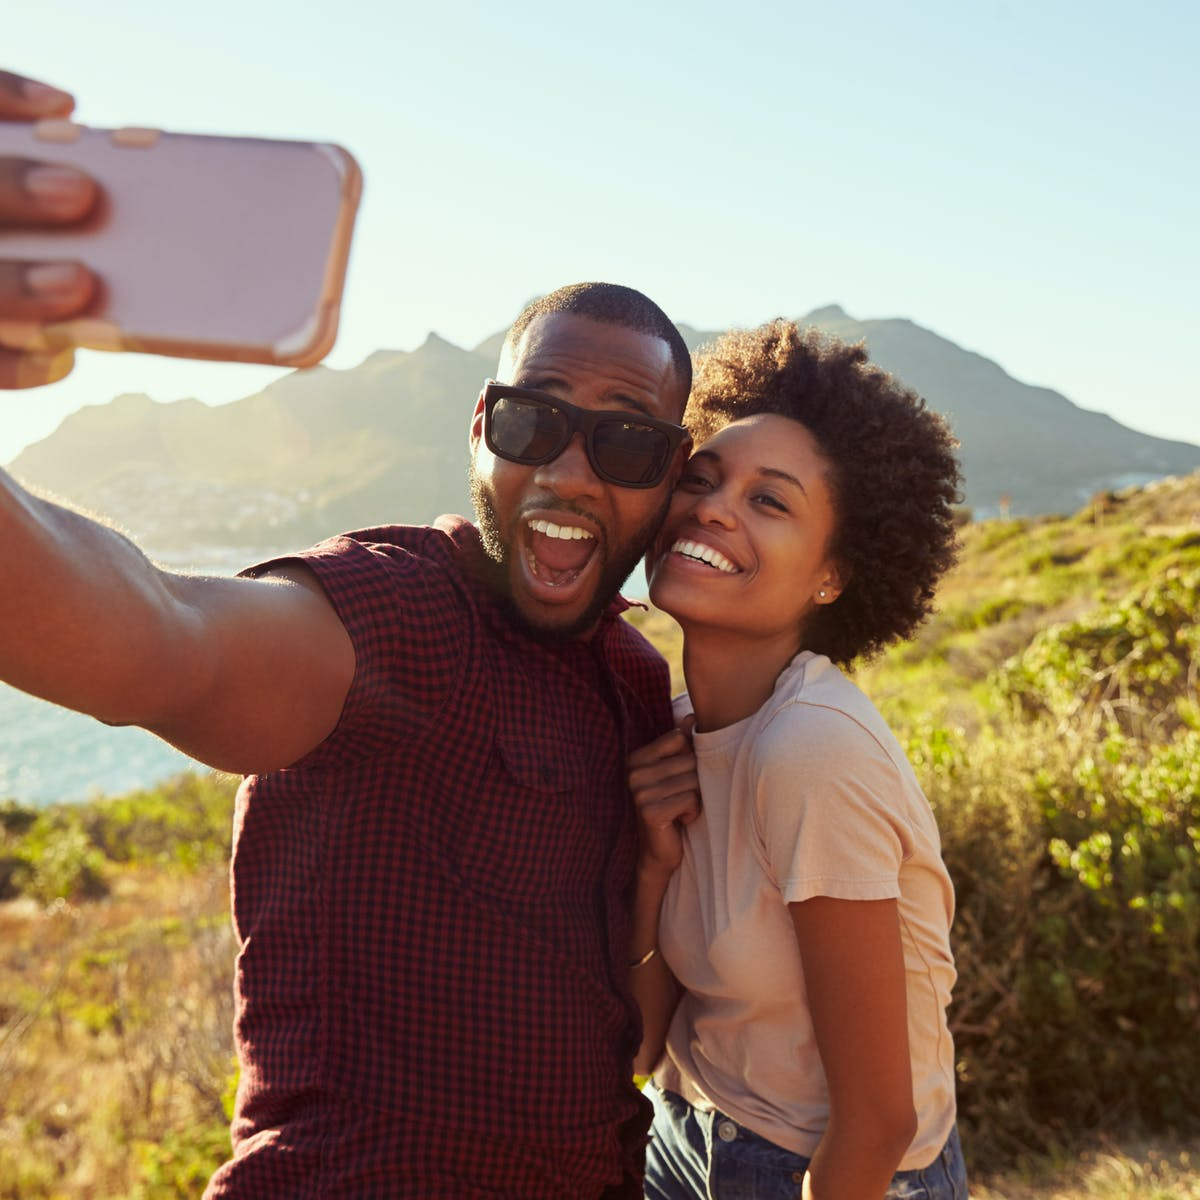 Why People Post Couple Photos As Their Social Media Profile Pictures View the funniest couples pictures at awkward family photos. why people post couple photos as